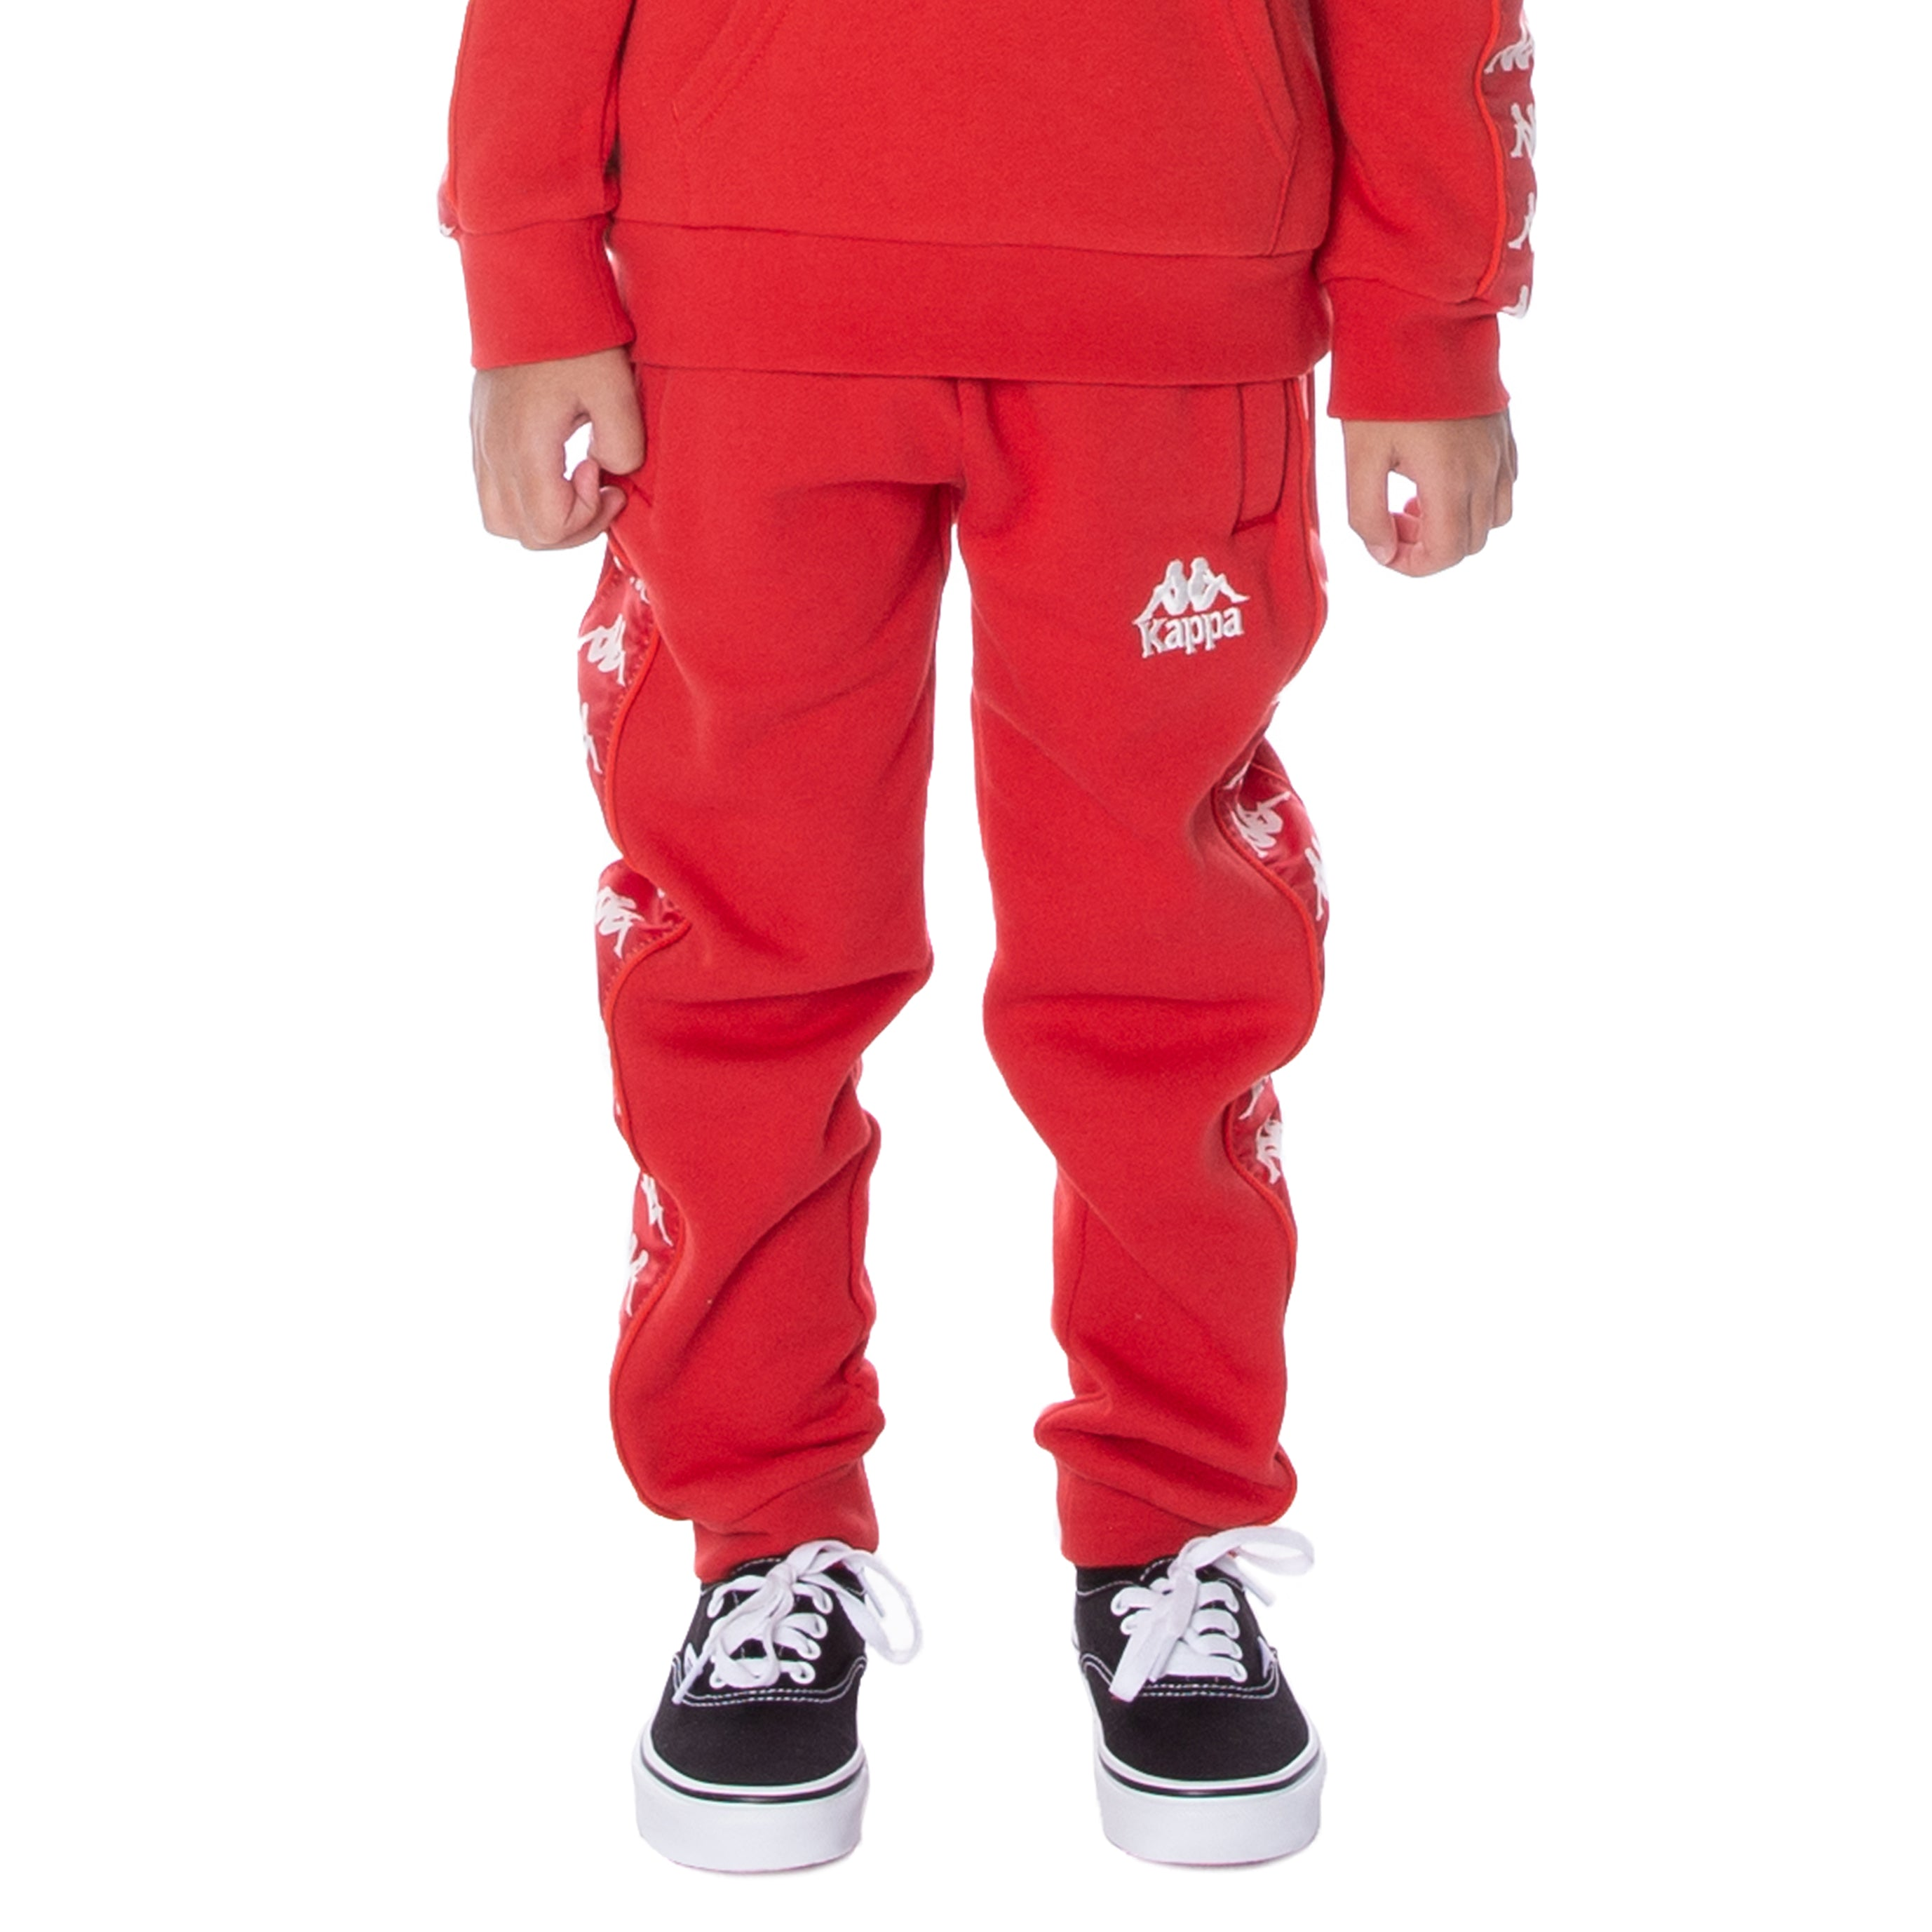 Kids 222 Banda Alanz Sweatpants